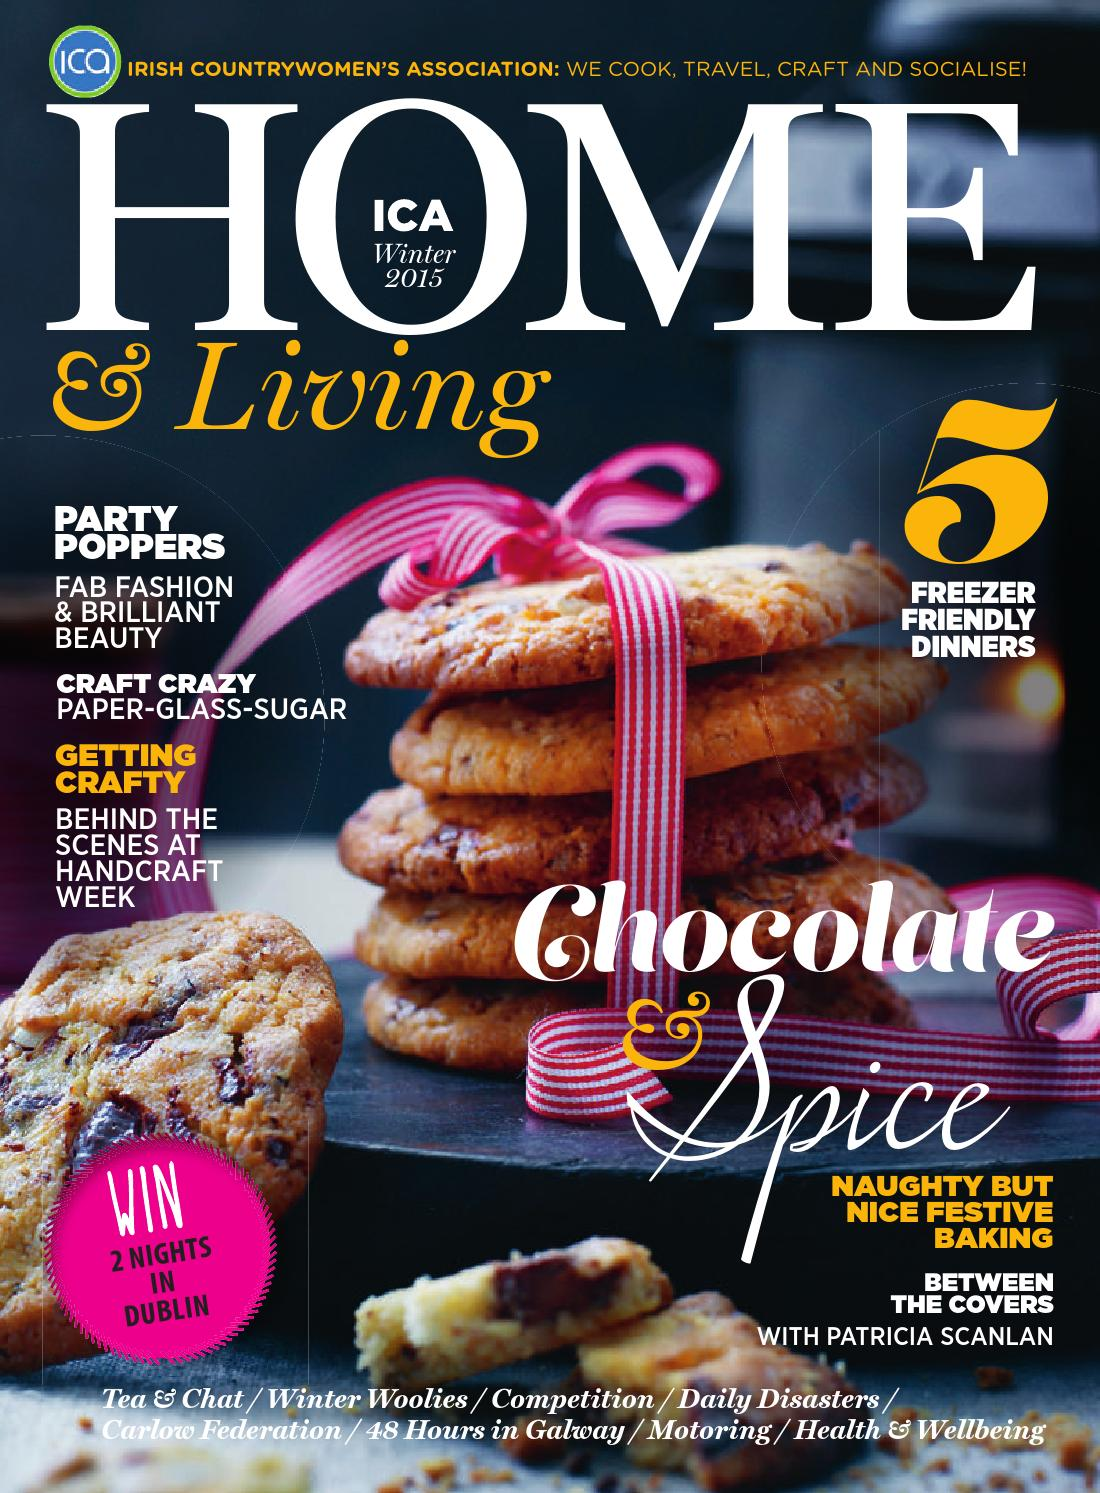 Ica Home Living Winter 2015 By Ashville Media Group Issuu Chilschool Vanila 800 Gr 2 Box